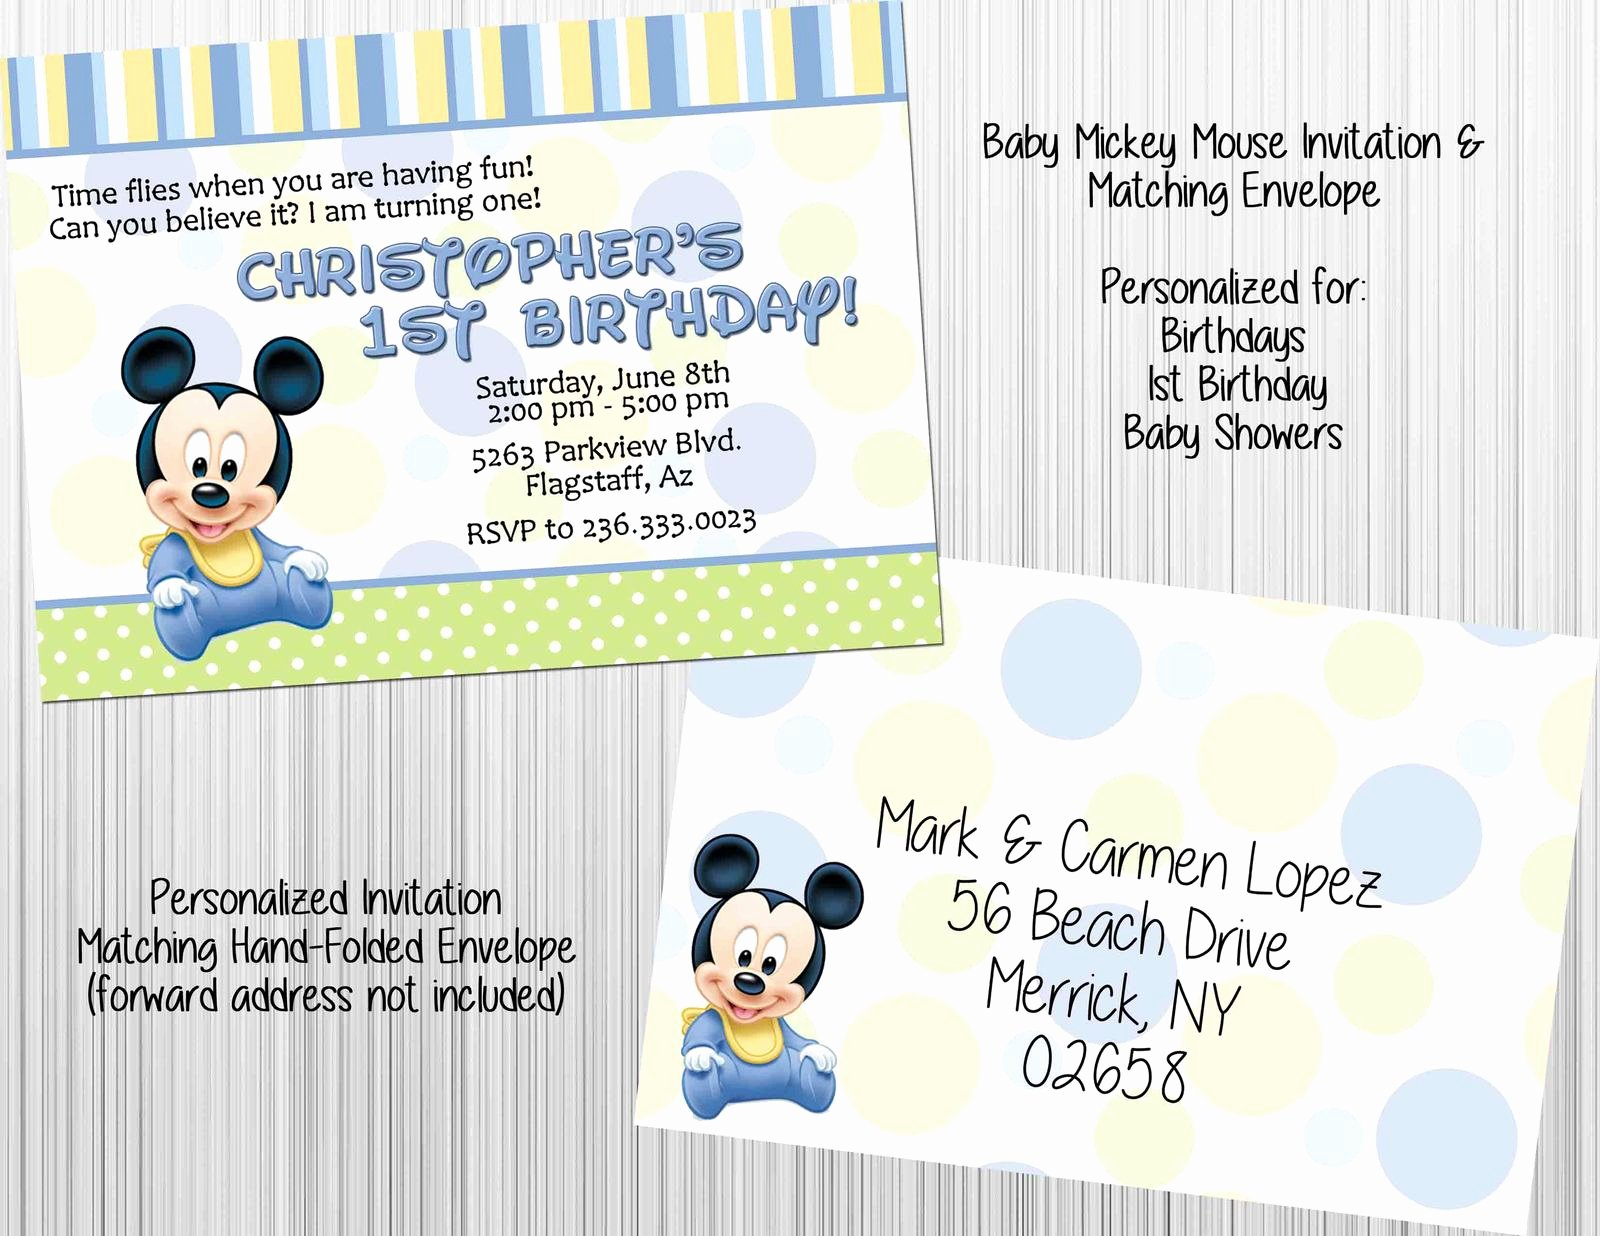 Baby Mickey Mouse Birthday Invitations Awesome Baby Mickey Mouse Invitation Set Envelopes Birthday